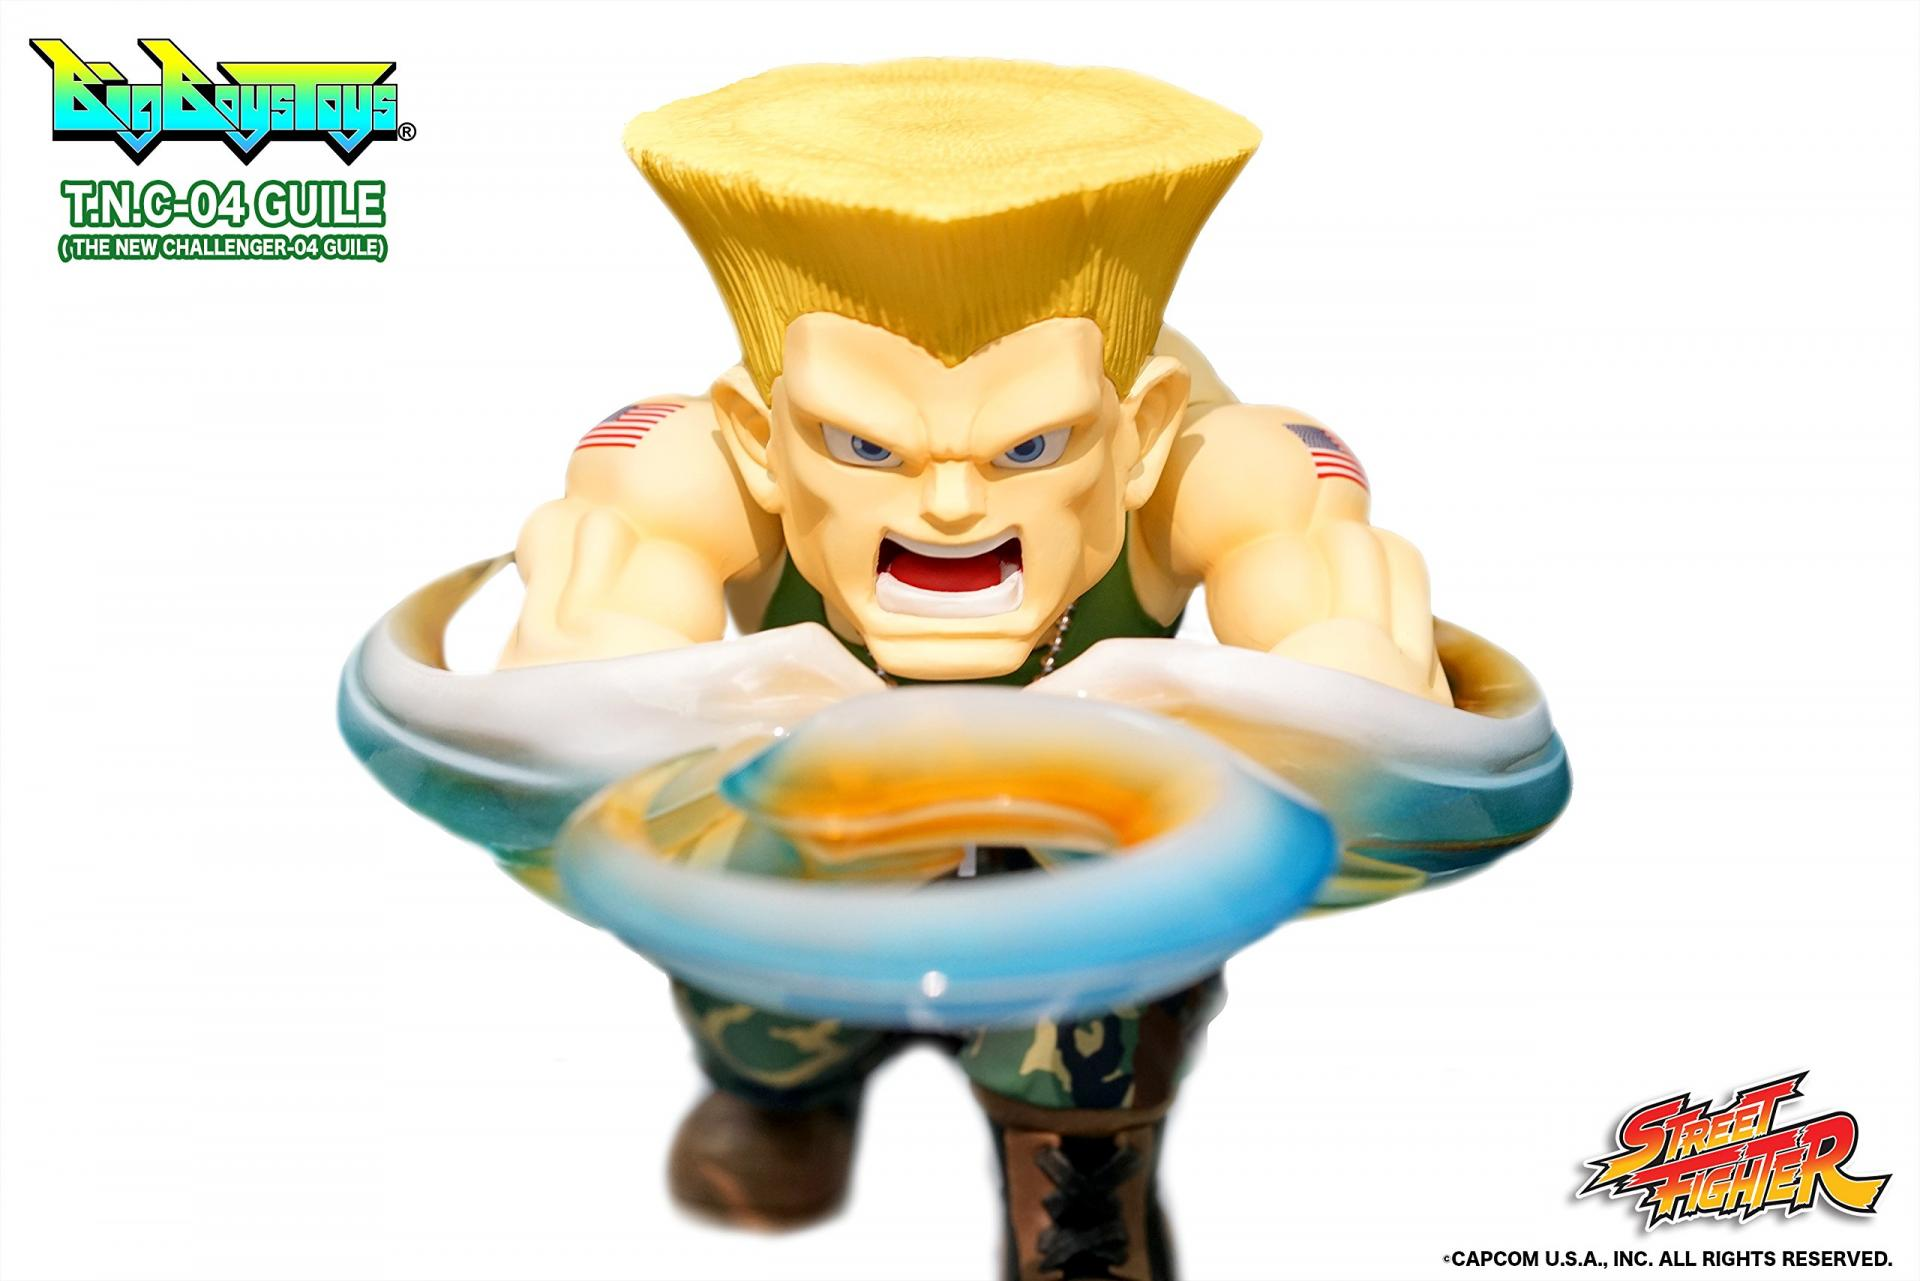 Street fighter figurine led son guile the new challenger 1